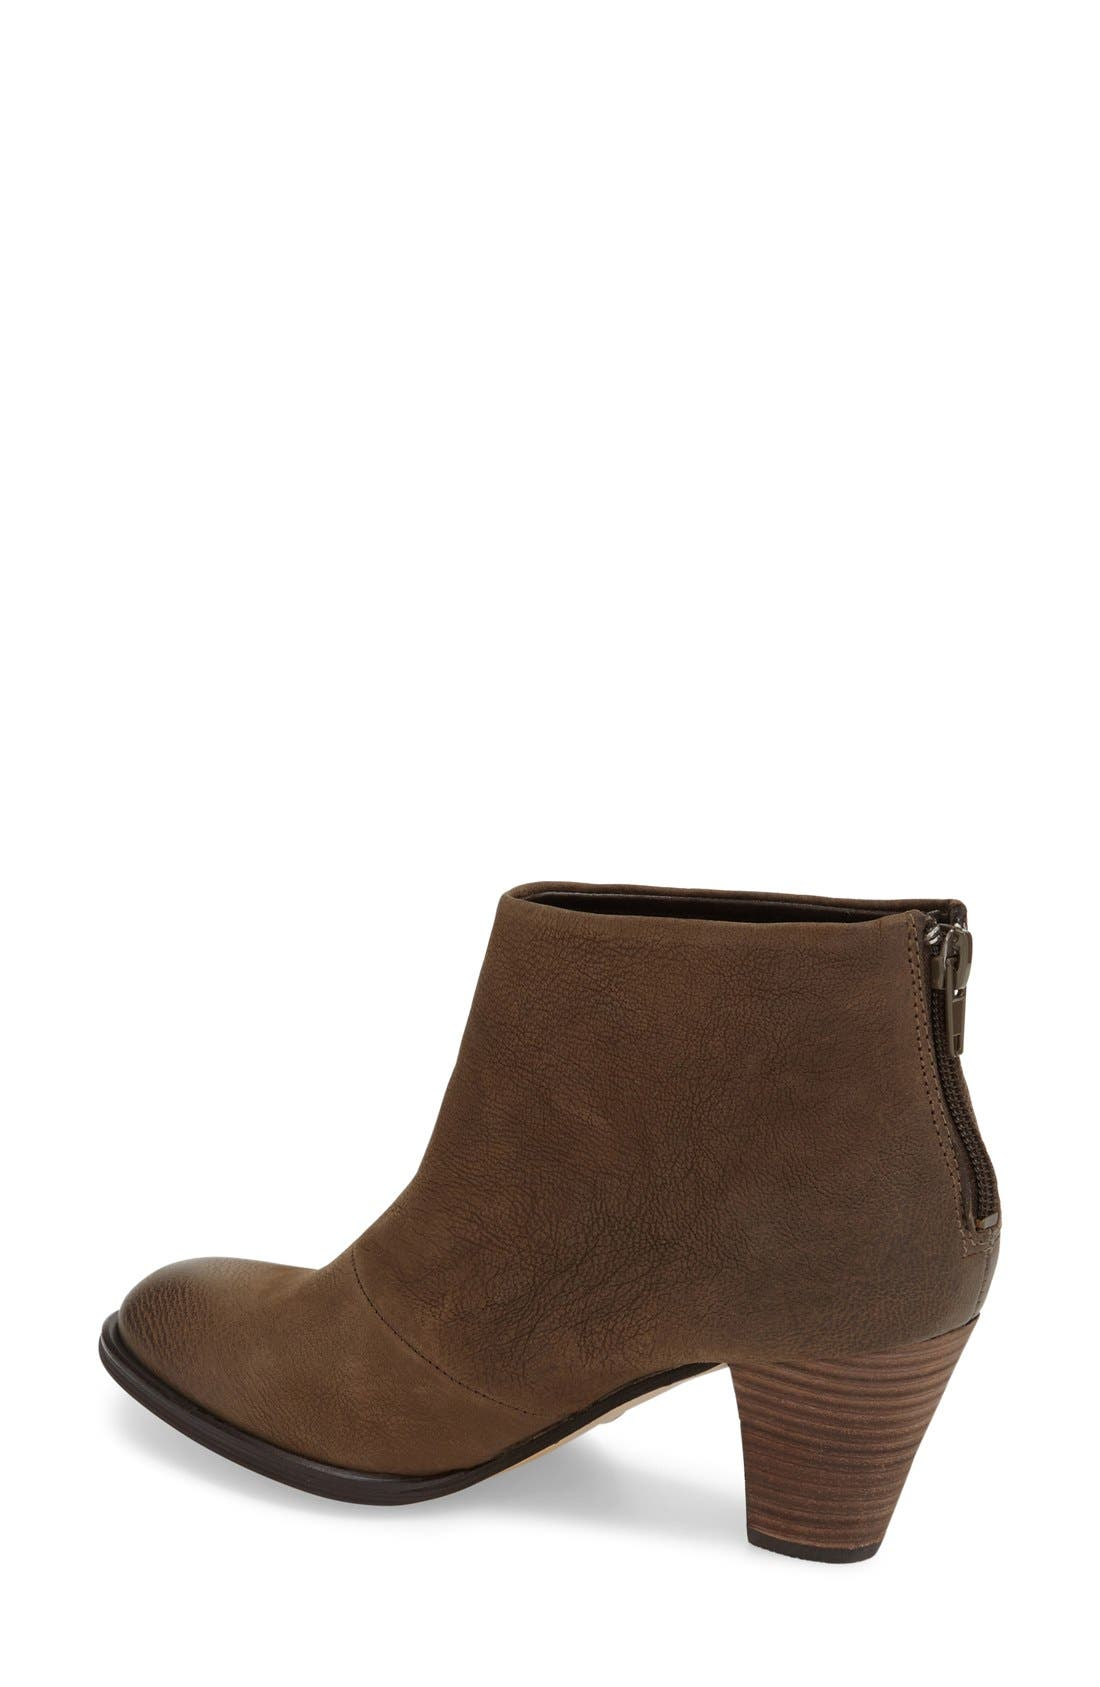 'Devyn' Ankle Bootie,                             Alternate thumbnail 2, color,                             Khaki Leather